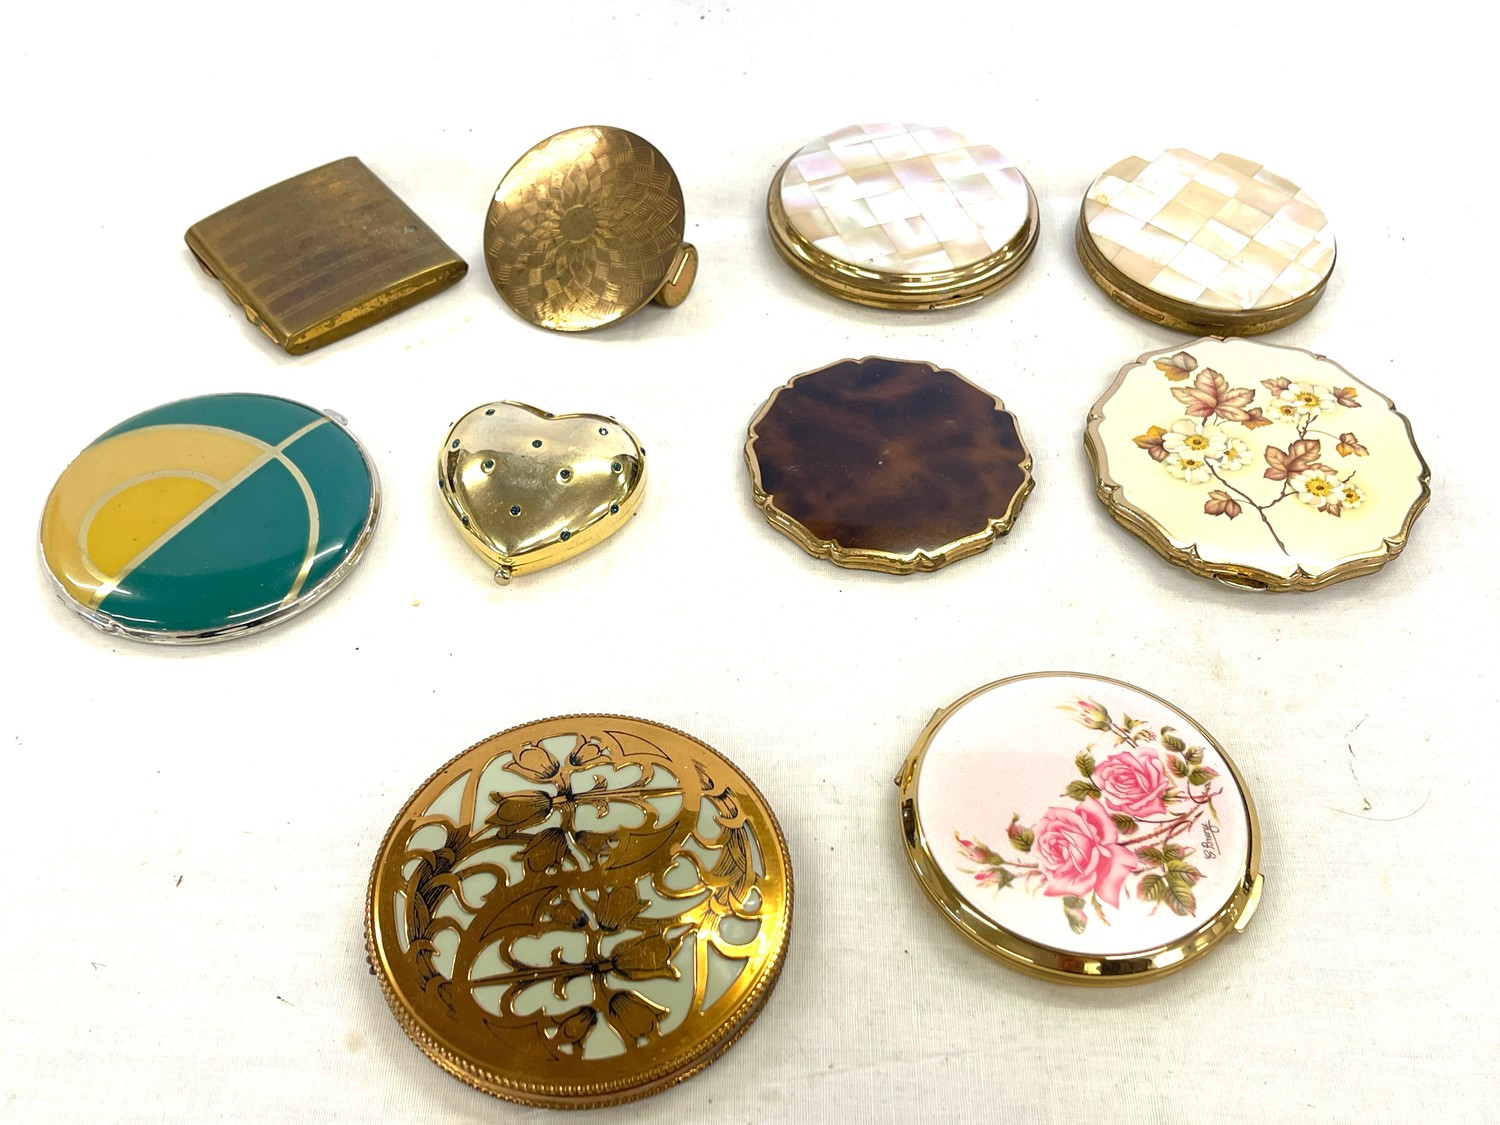 Selection of vintage ladies compacts